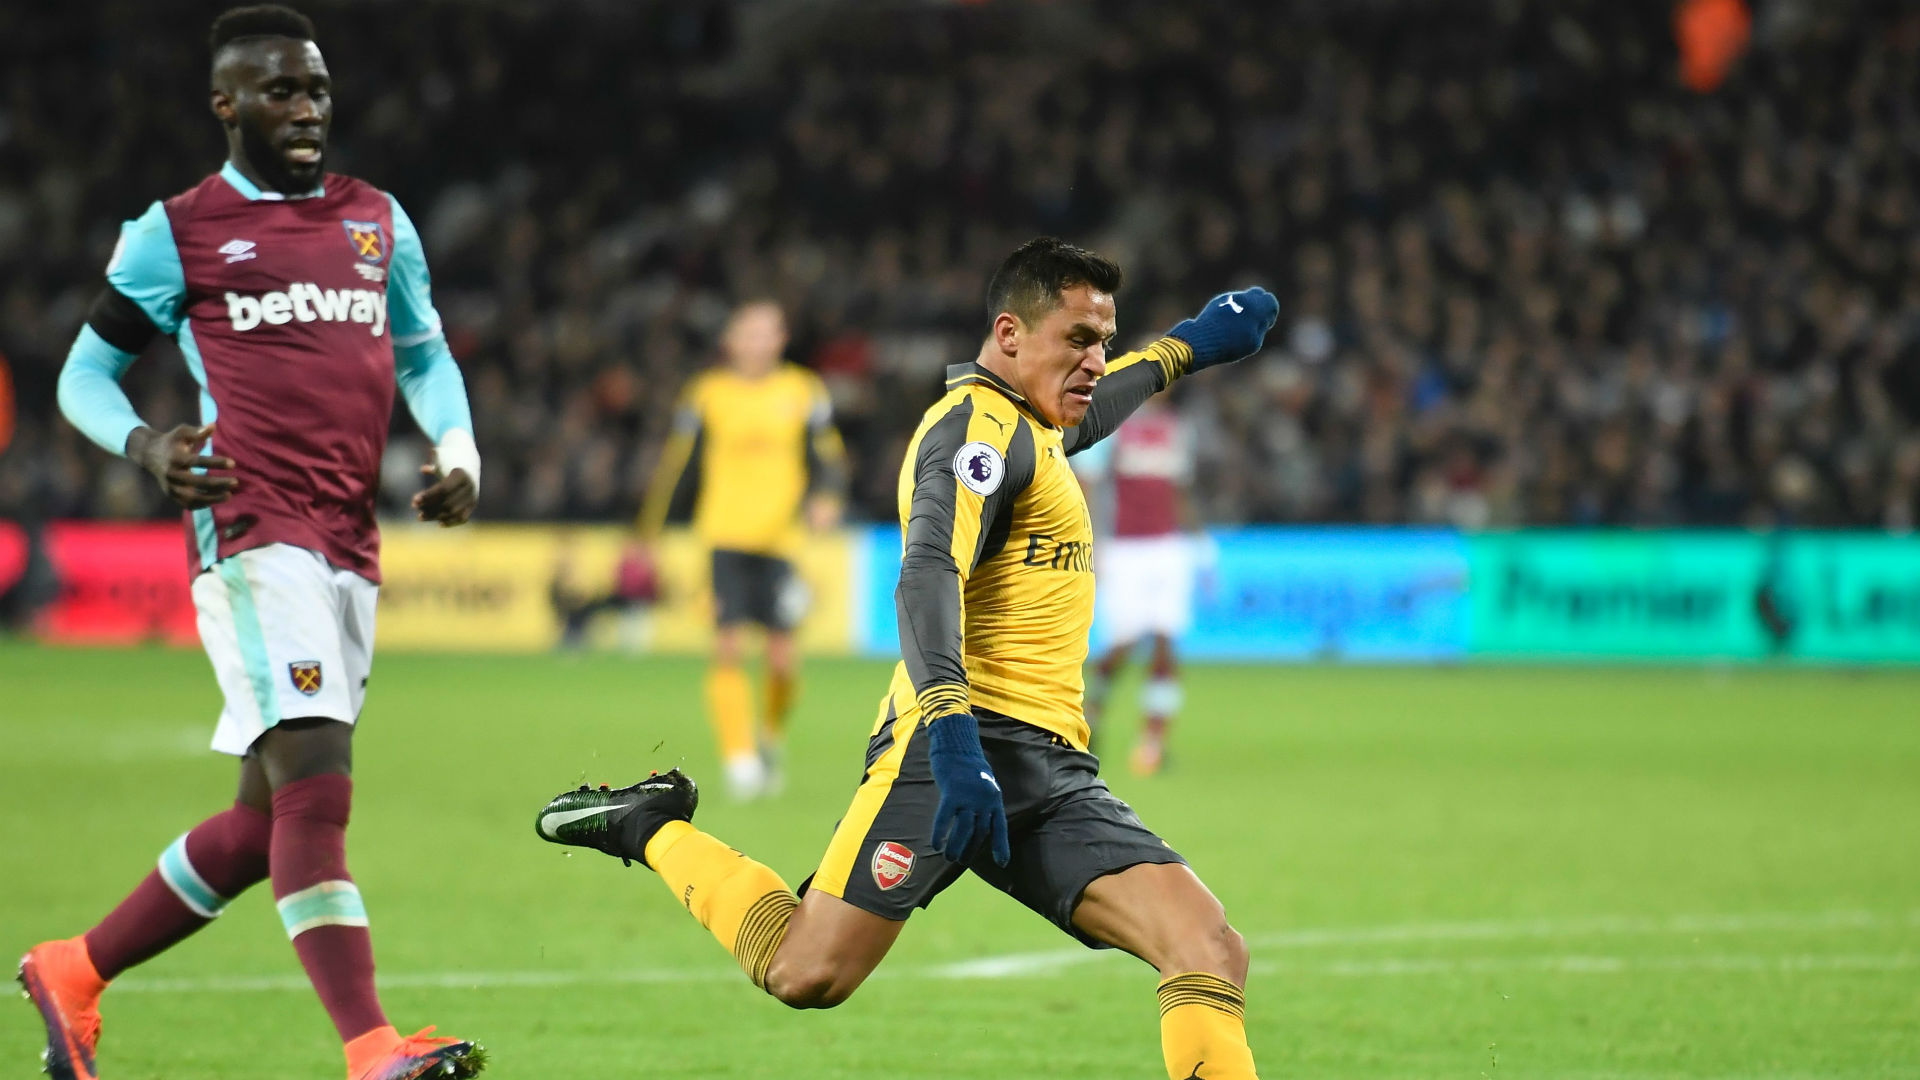 Arsene Wenger: Why Alex Oxlade-Chamberlain is playing with freedom and power